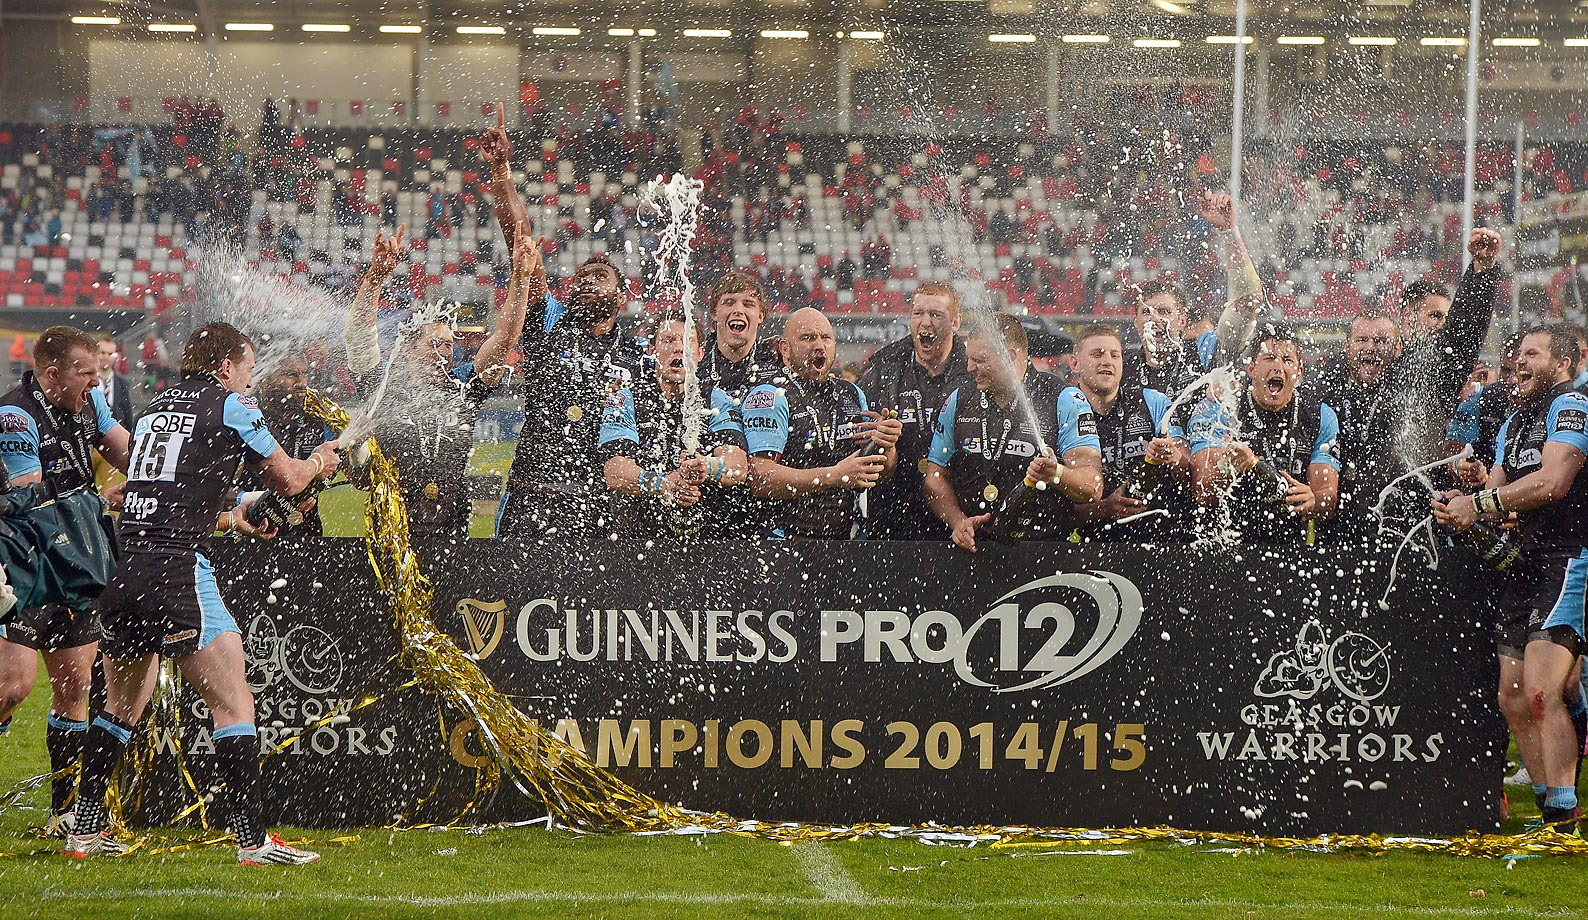 Glasgow Warriors players lift the Pro 12 trophy after their team's victory in the Guinness Pro 12 final match.